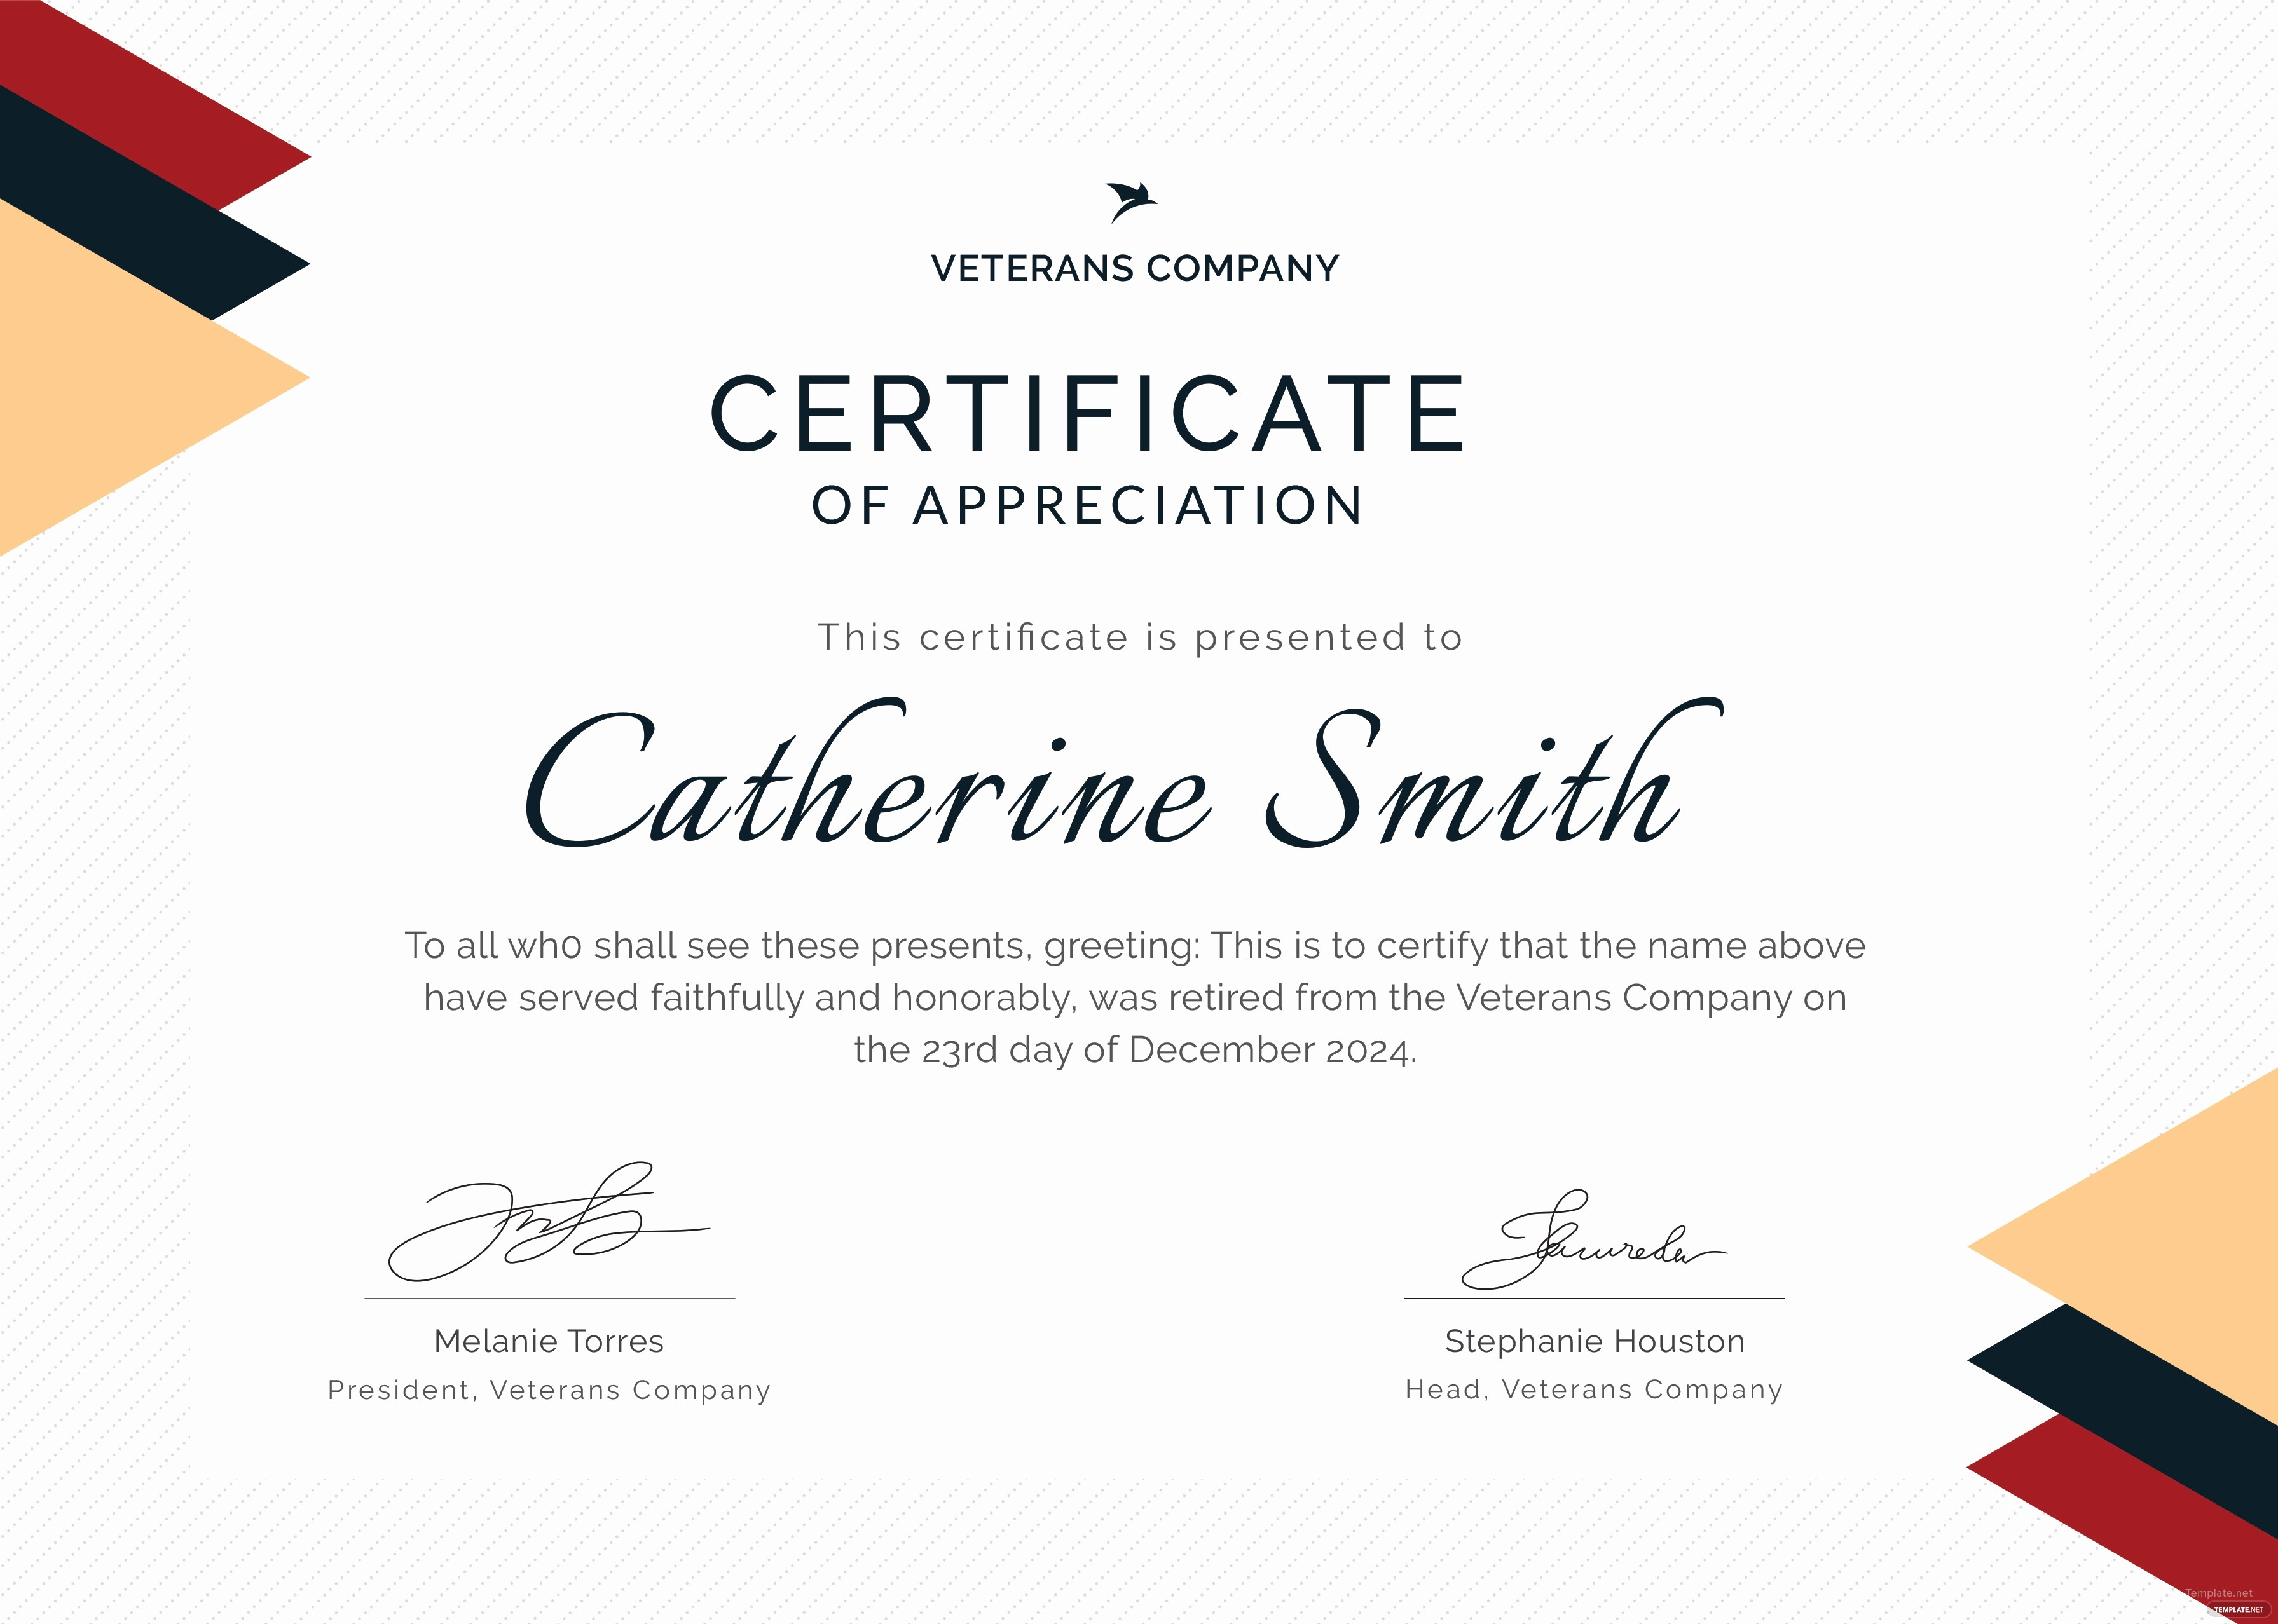 Retirement Certificate Templates for Word Fresh Free Retirement Certificate Of Appreciation Template In